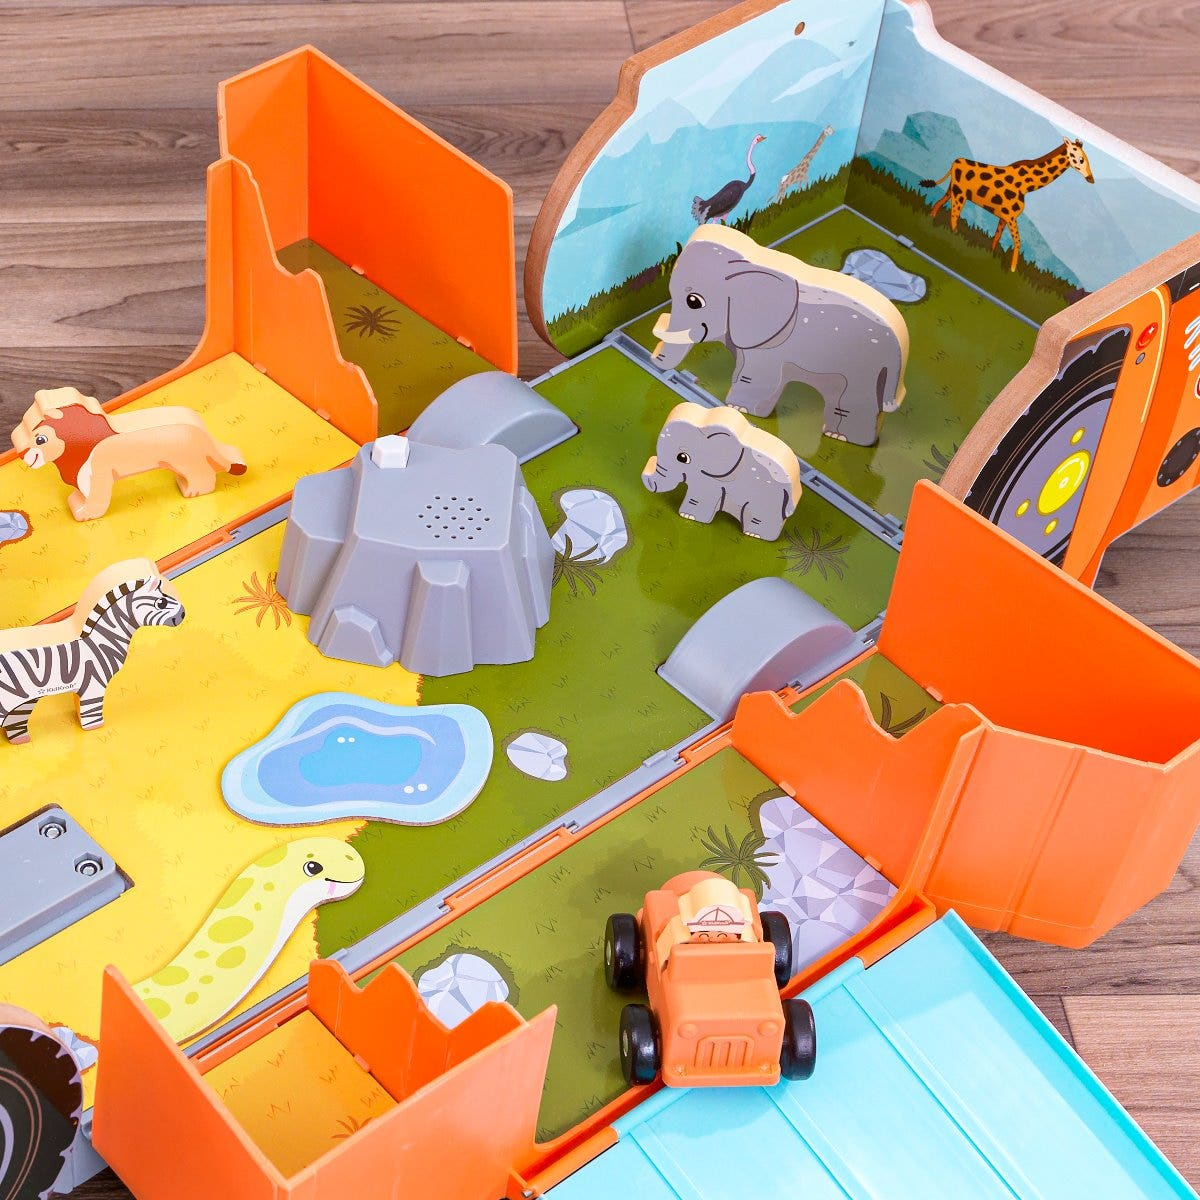 Vivid graphics on the sides and the base of the inside add to the make believe play.